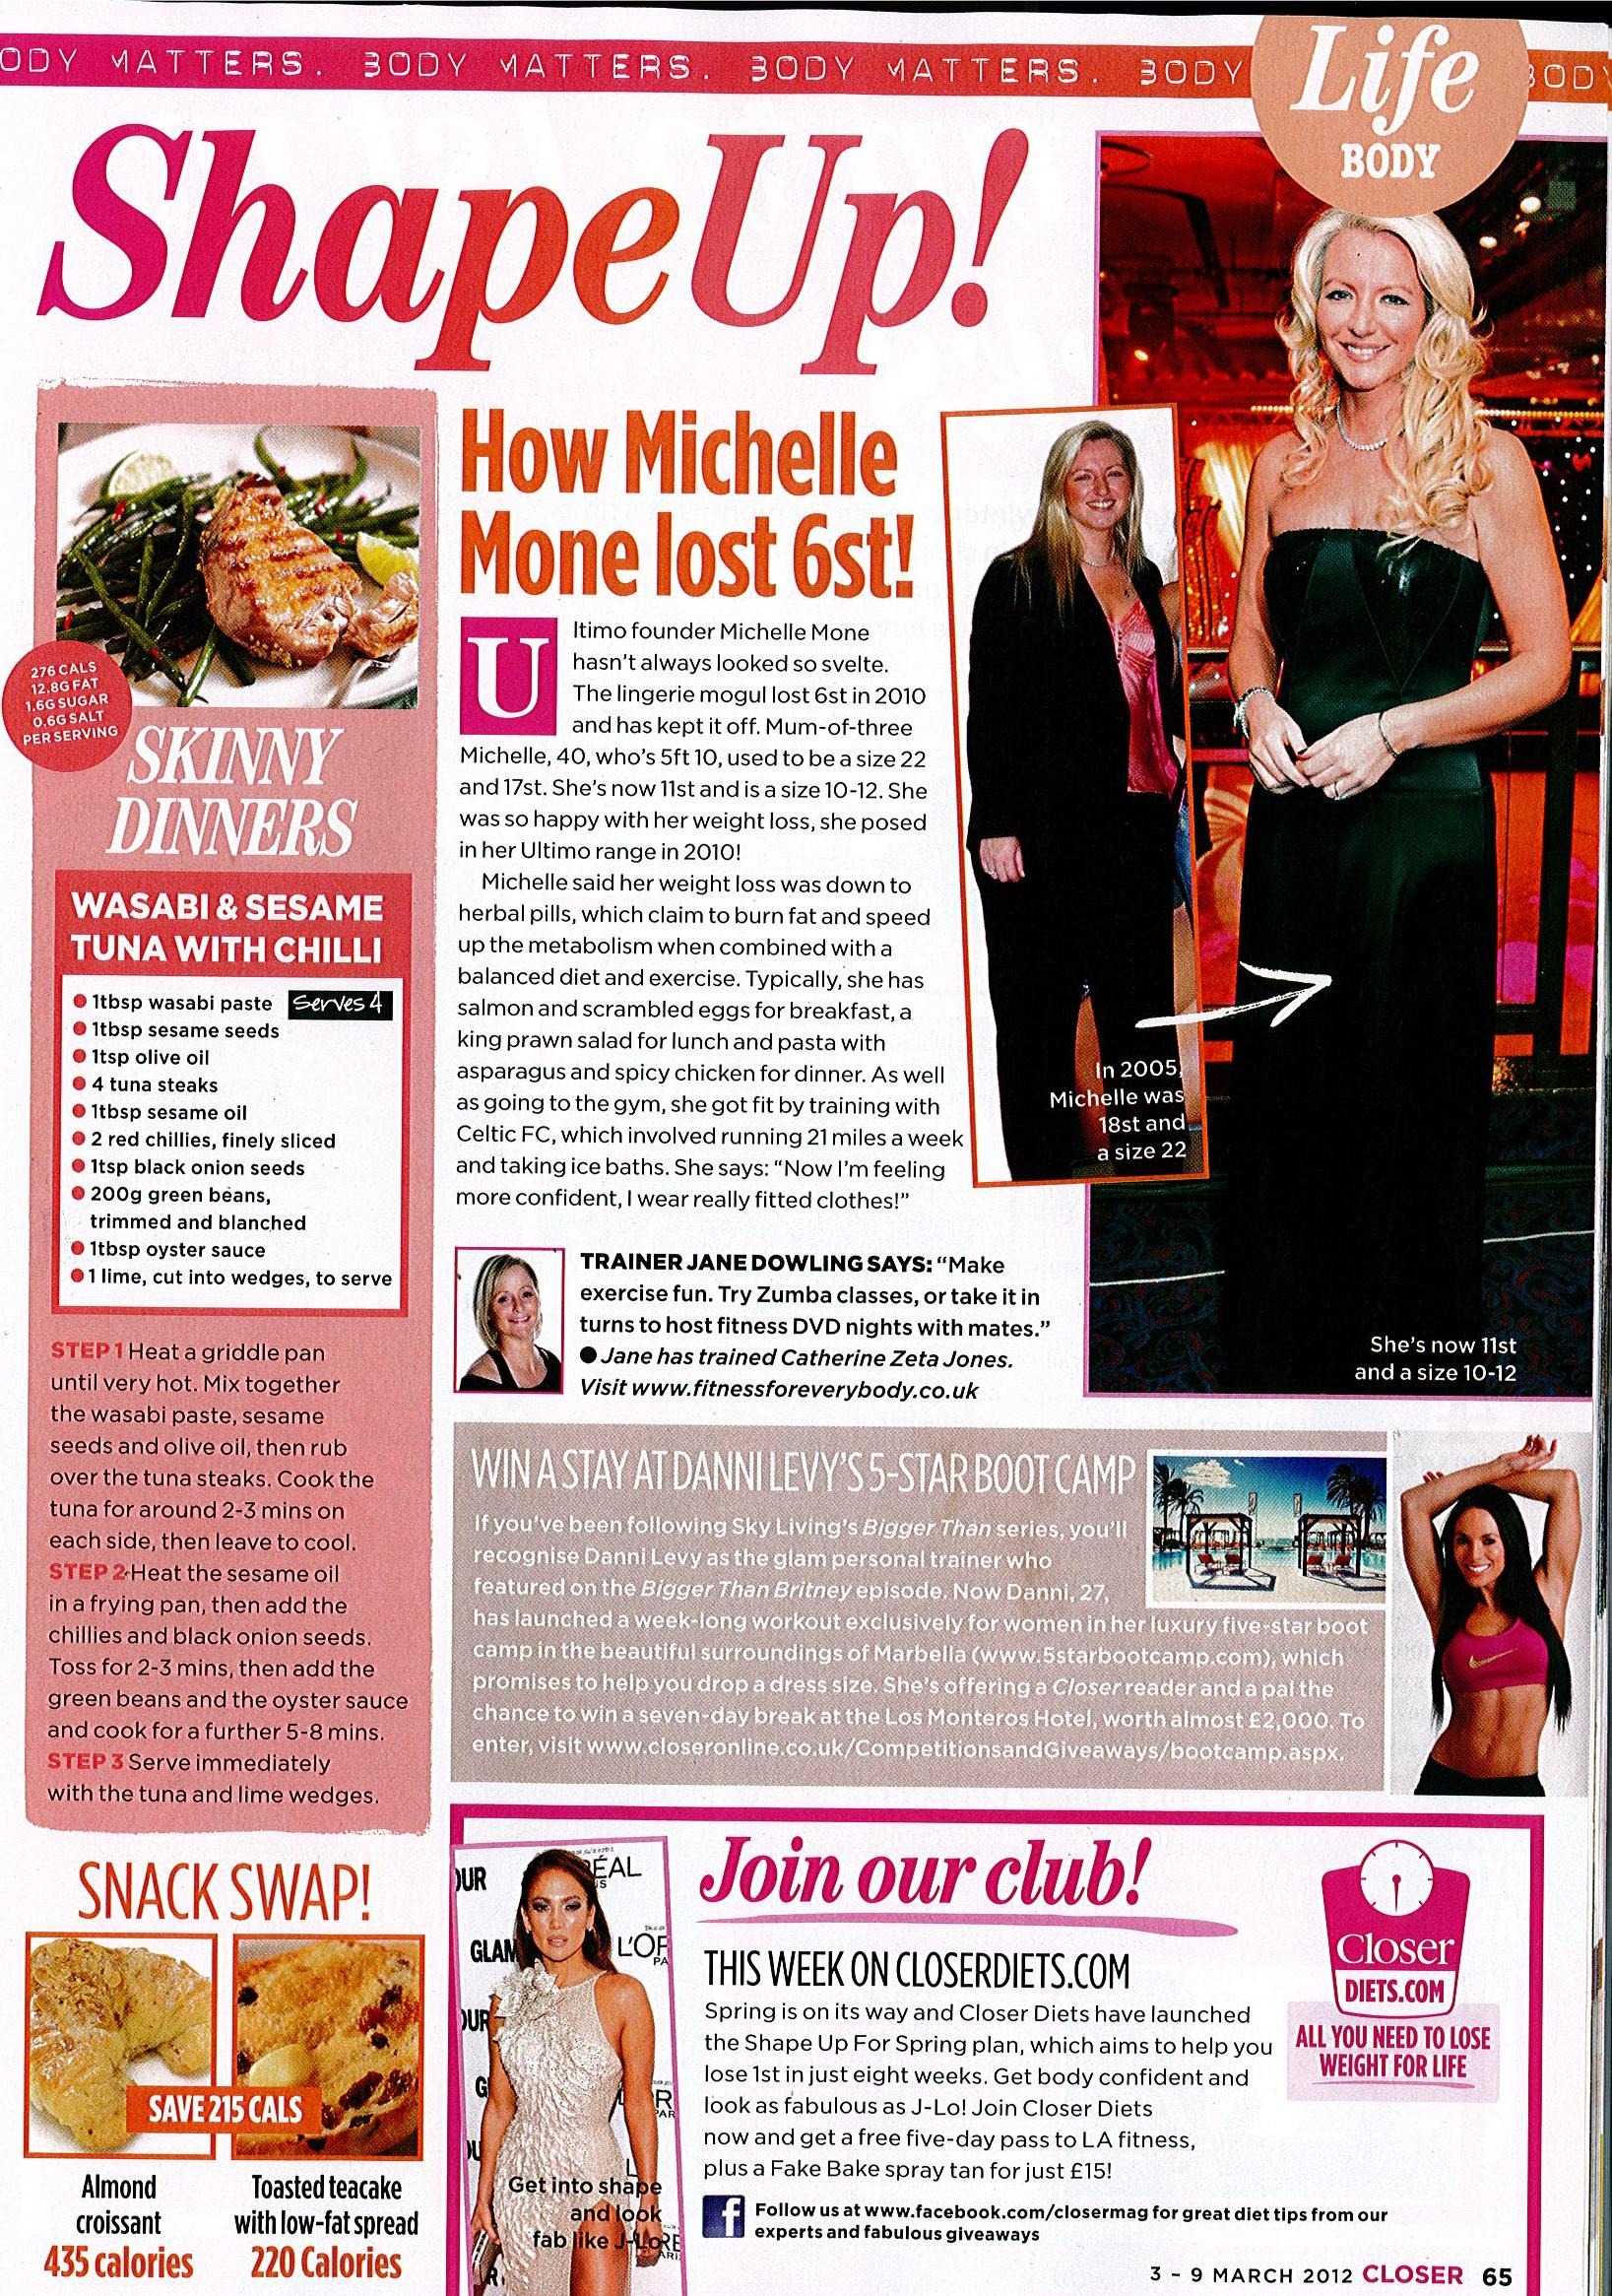 Closer-Michelle-Tues28thFeb2012